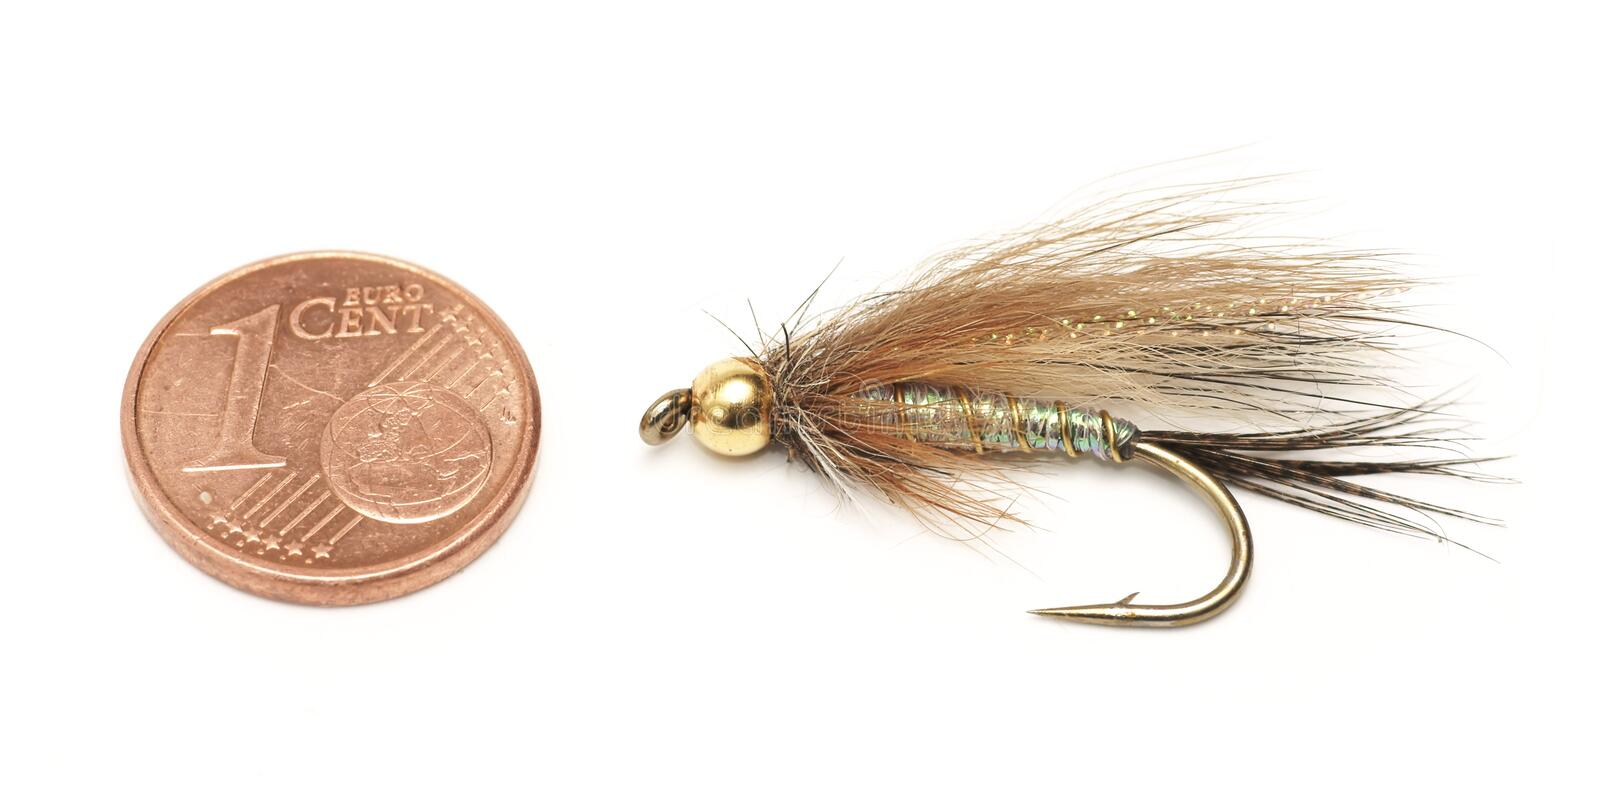 Fly fishing, bait, and one euro cent for size comparison. Fly fishing , bait, and one euro cent for size comparison royalty free stock images